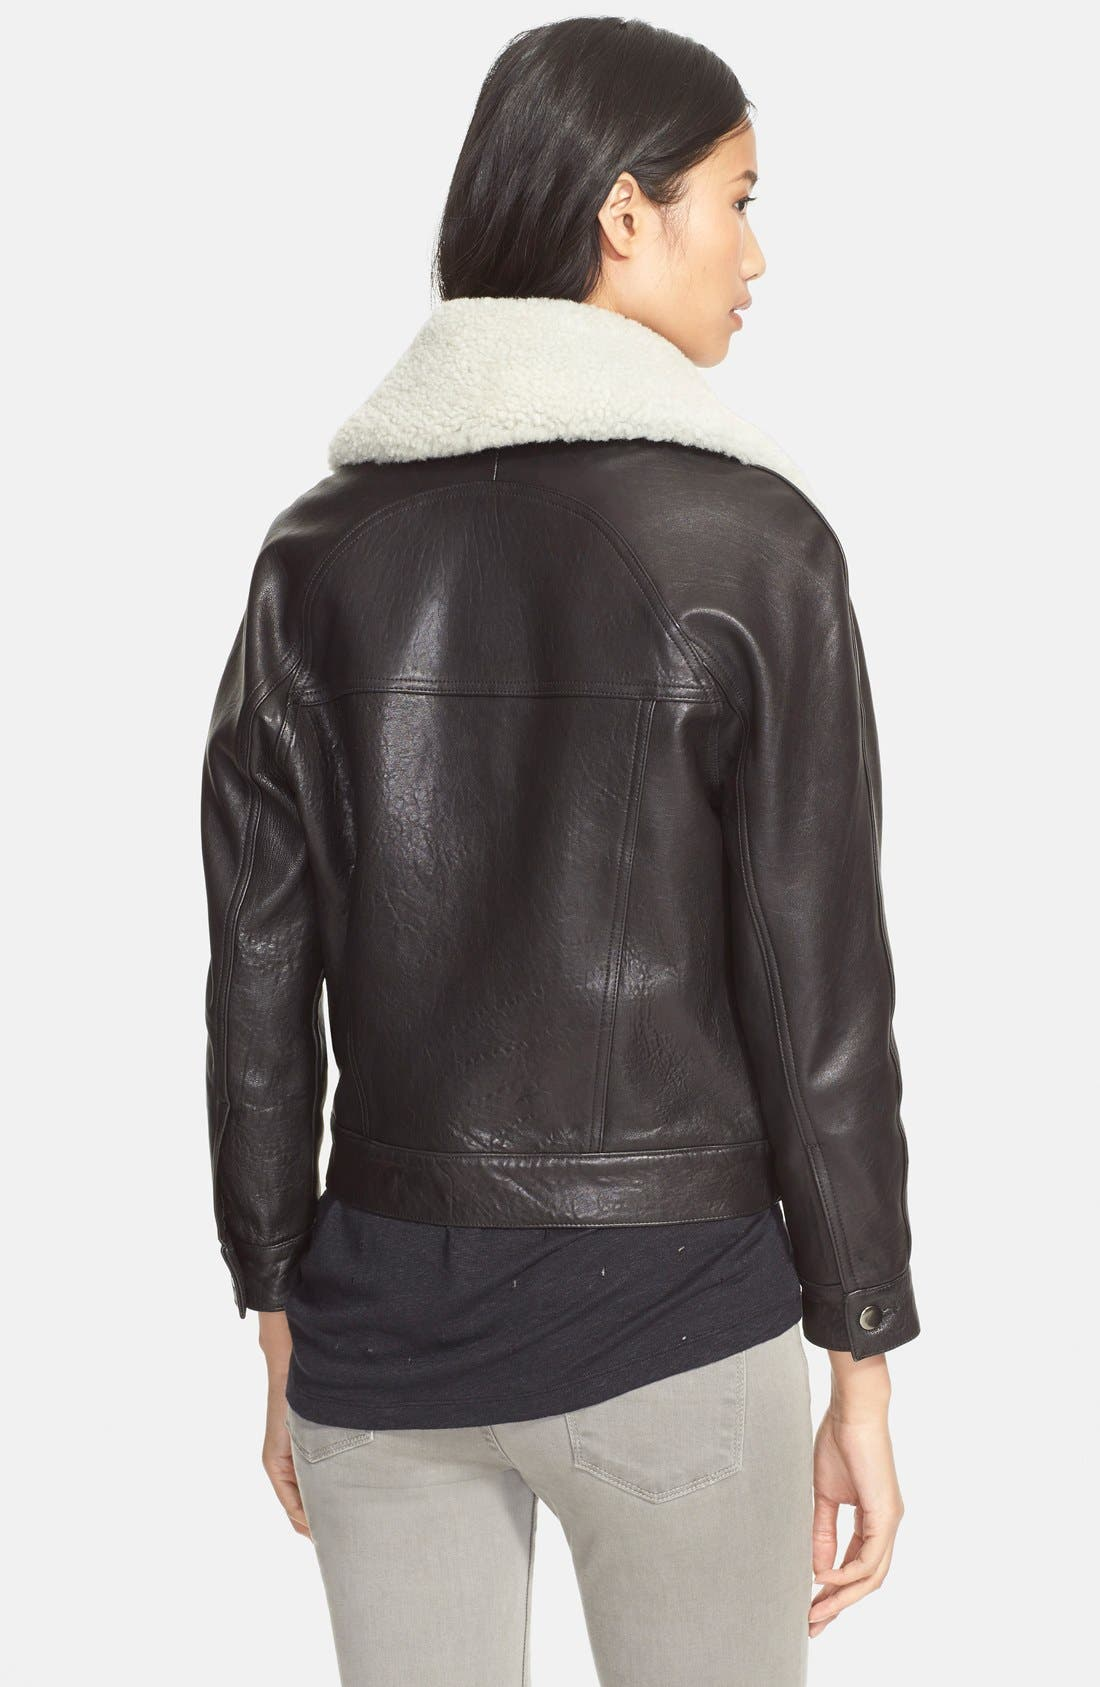 'Padre' Lambskin Leather Jacketwith Genuine ShearlingCollar,                             Alternate thumbnail 2, color,                             001